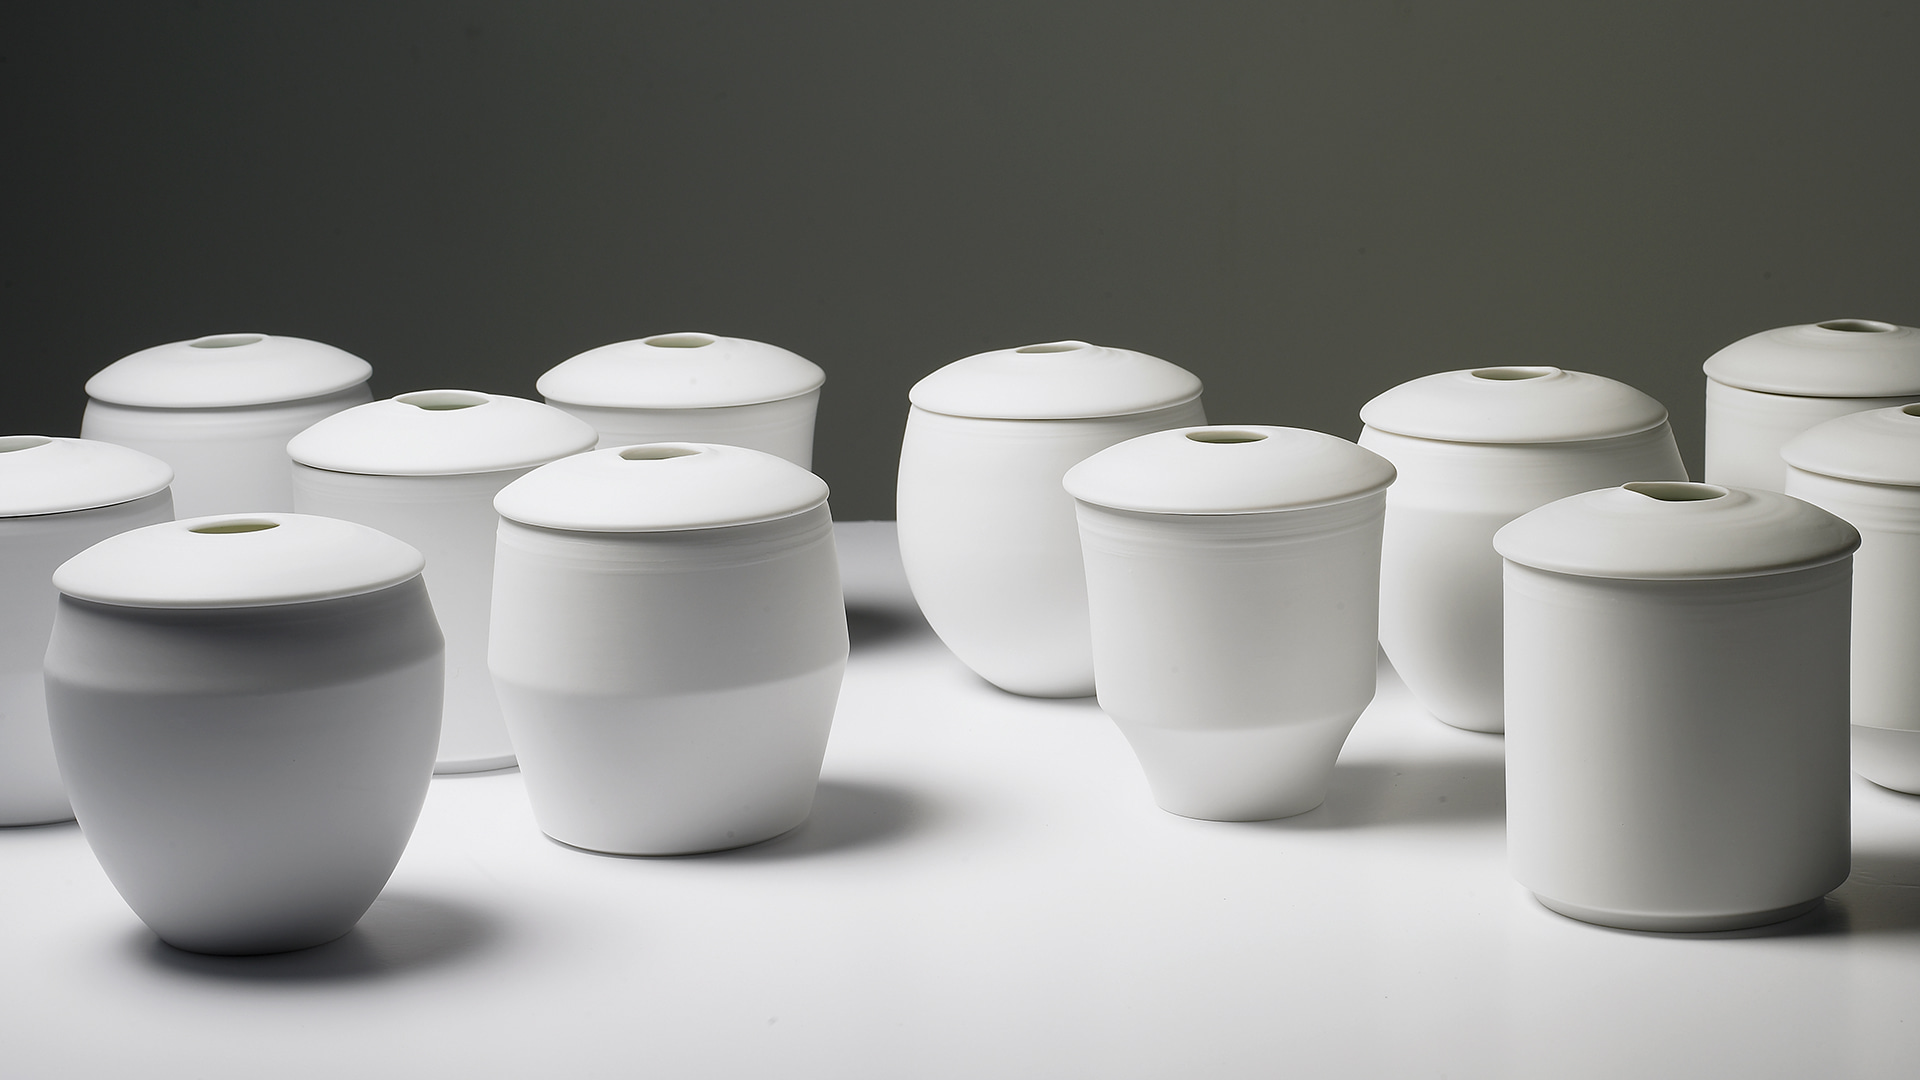 Handcasting atyoical porcelain